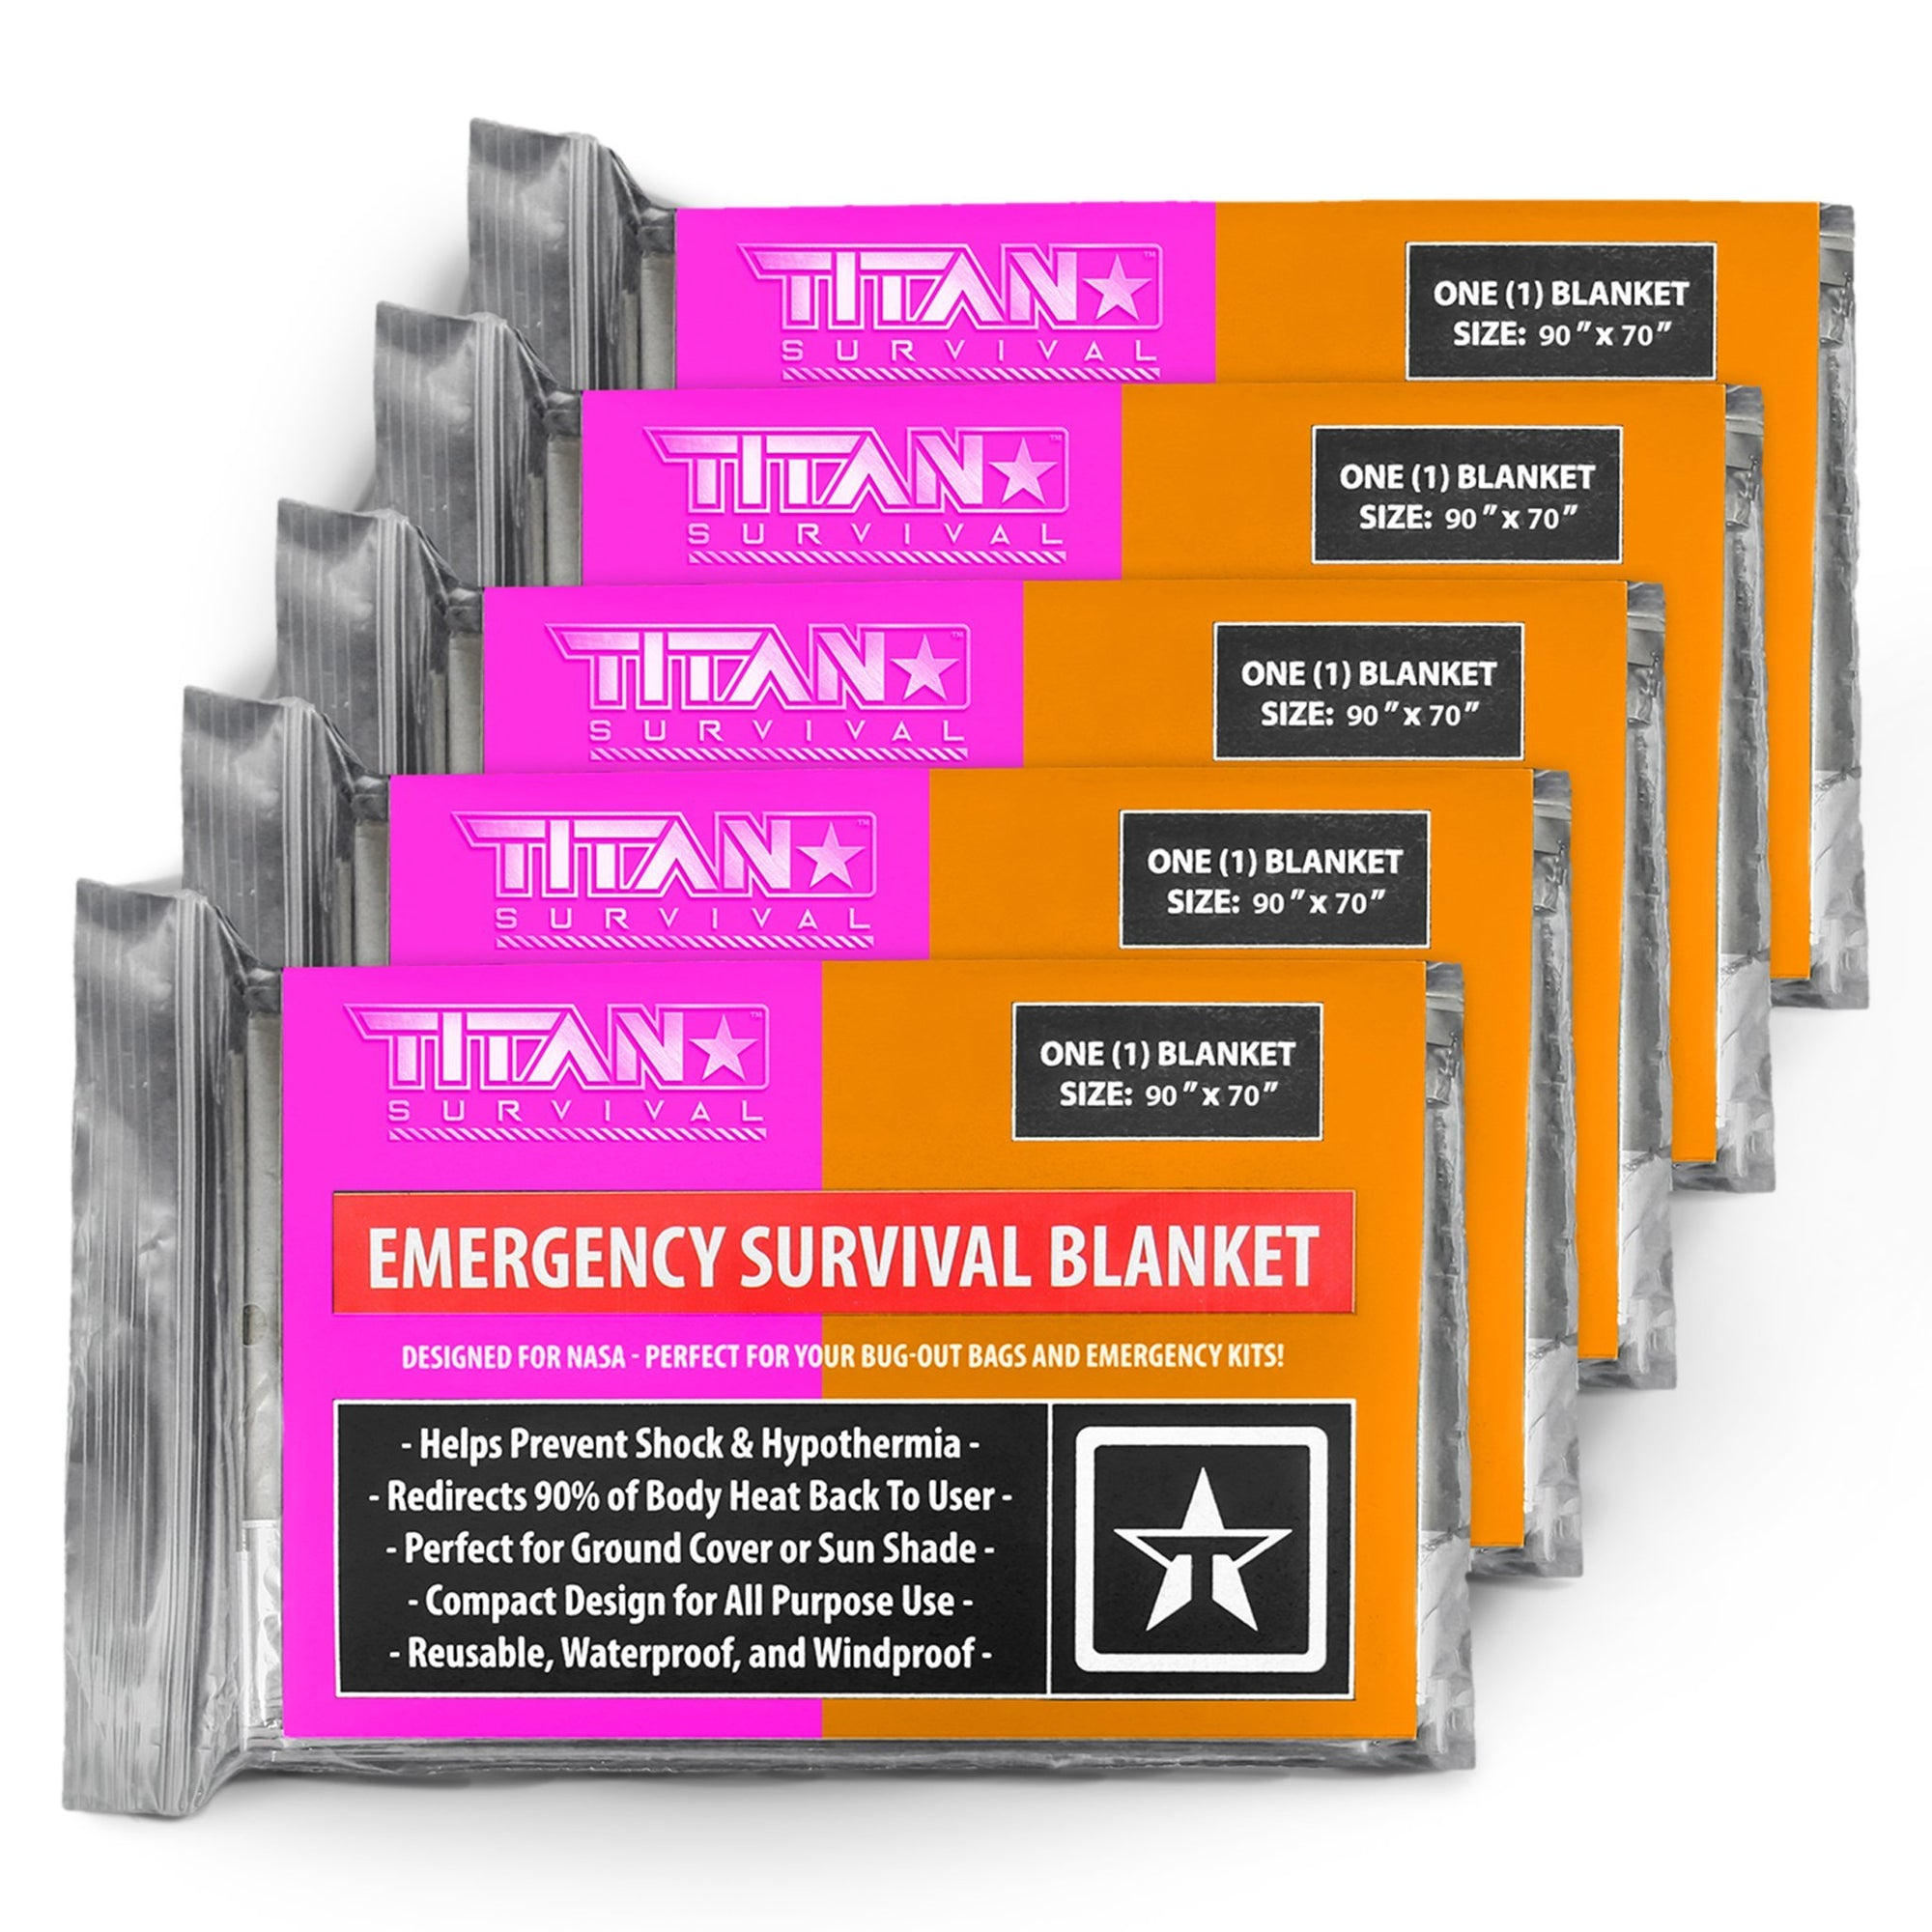 XL Mylar Survival Blankets, 5-Pack, SIGNAL PANEL Survival Blankets TITAN Survival